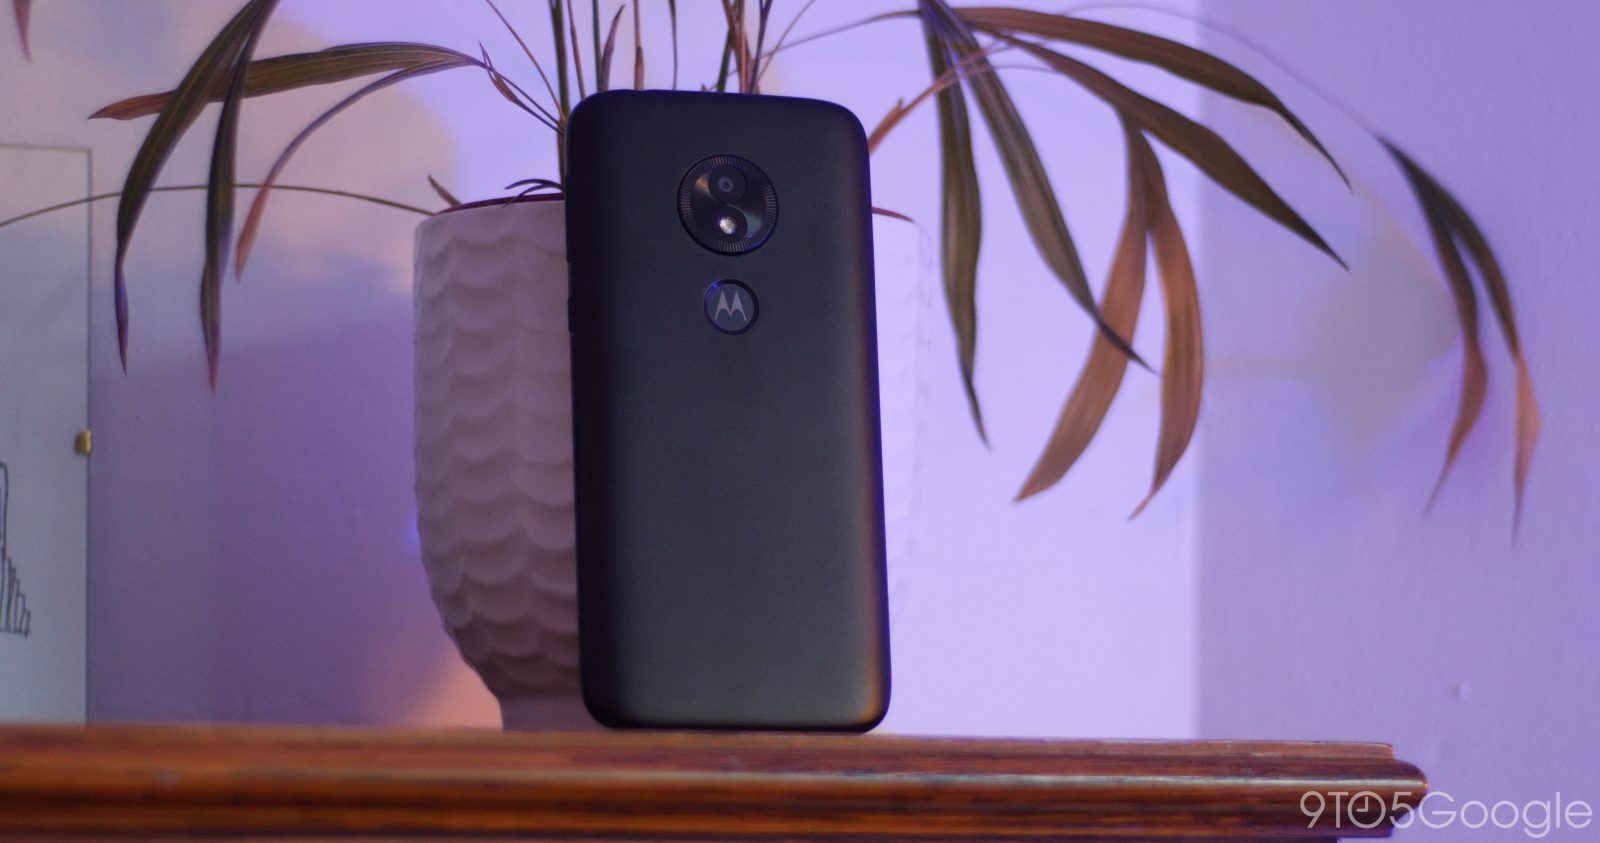 Upcoming Motorola Moto E6 outed, will come to US with Snapdragon 430, 2GB RAM, Android Pie